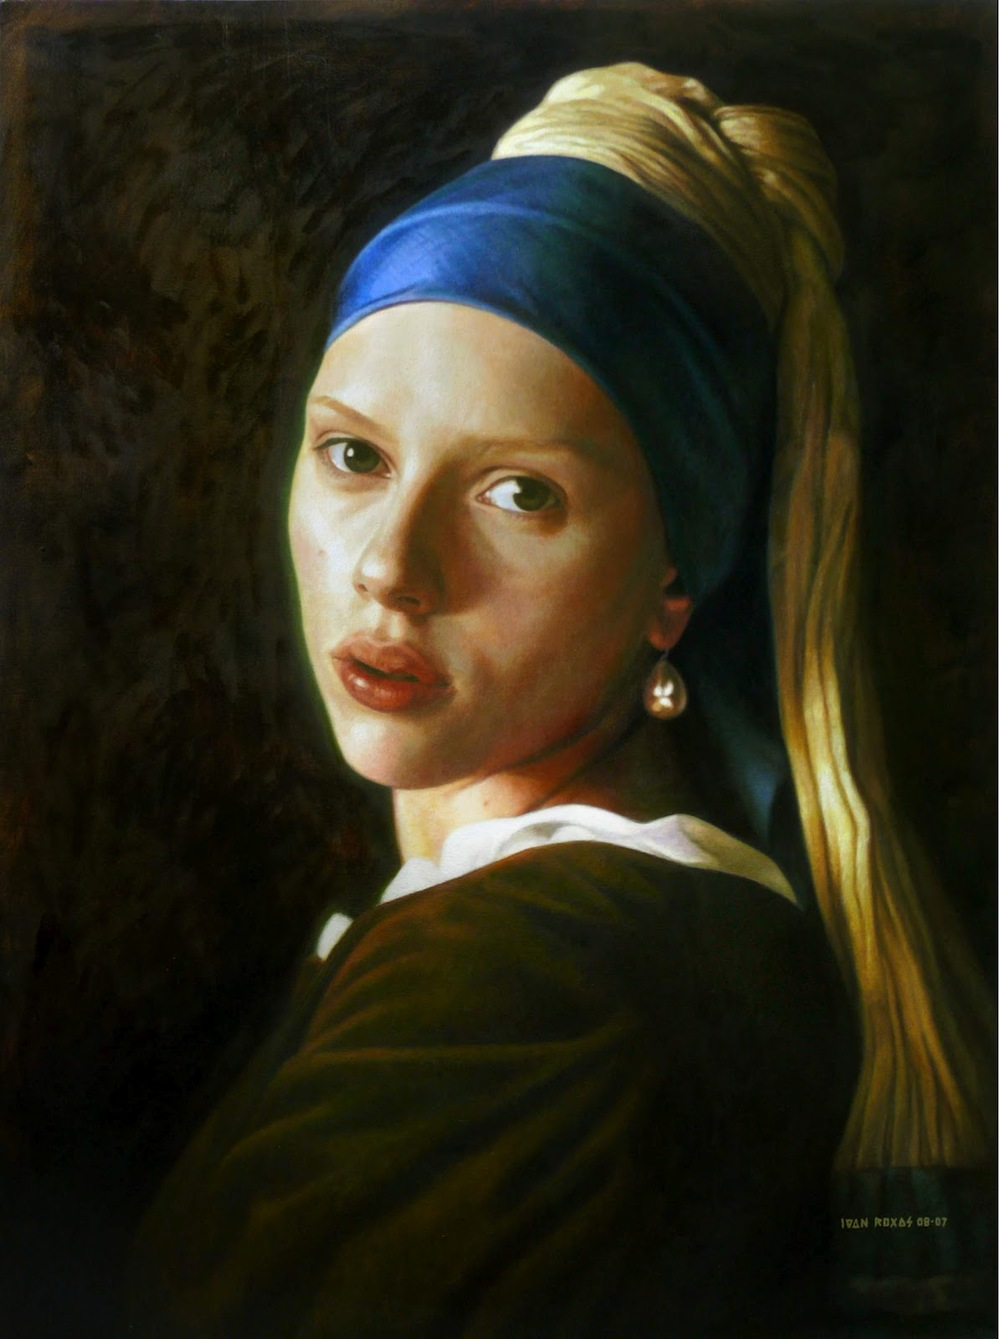 One of the best-loved paintings in the world is a mystery. Who is the model and why has she been painted? What is she thinking as she stares out at us? Are her wide eyes and enigmatic half-smile innocent or seductive? And why is she wearing a pearl earring? For further illumination read the novel by Tracy Chevalier and of course come see the film.